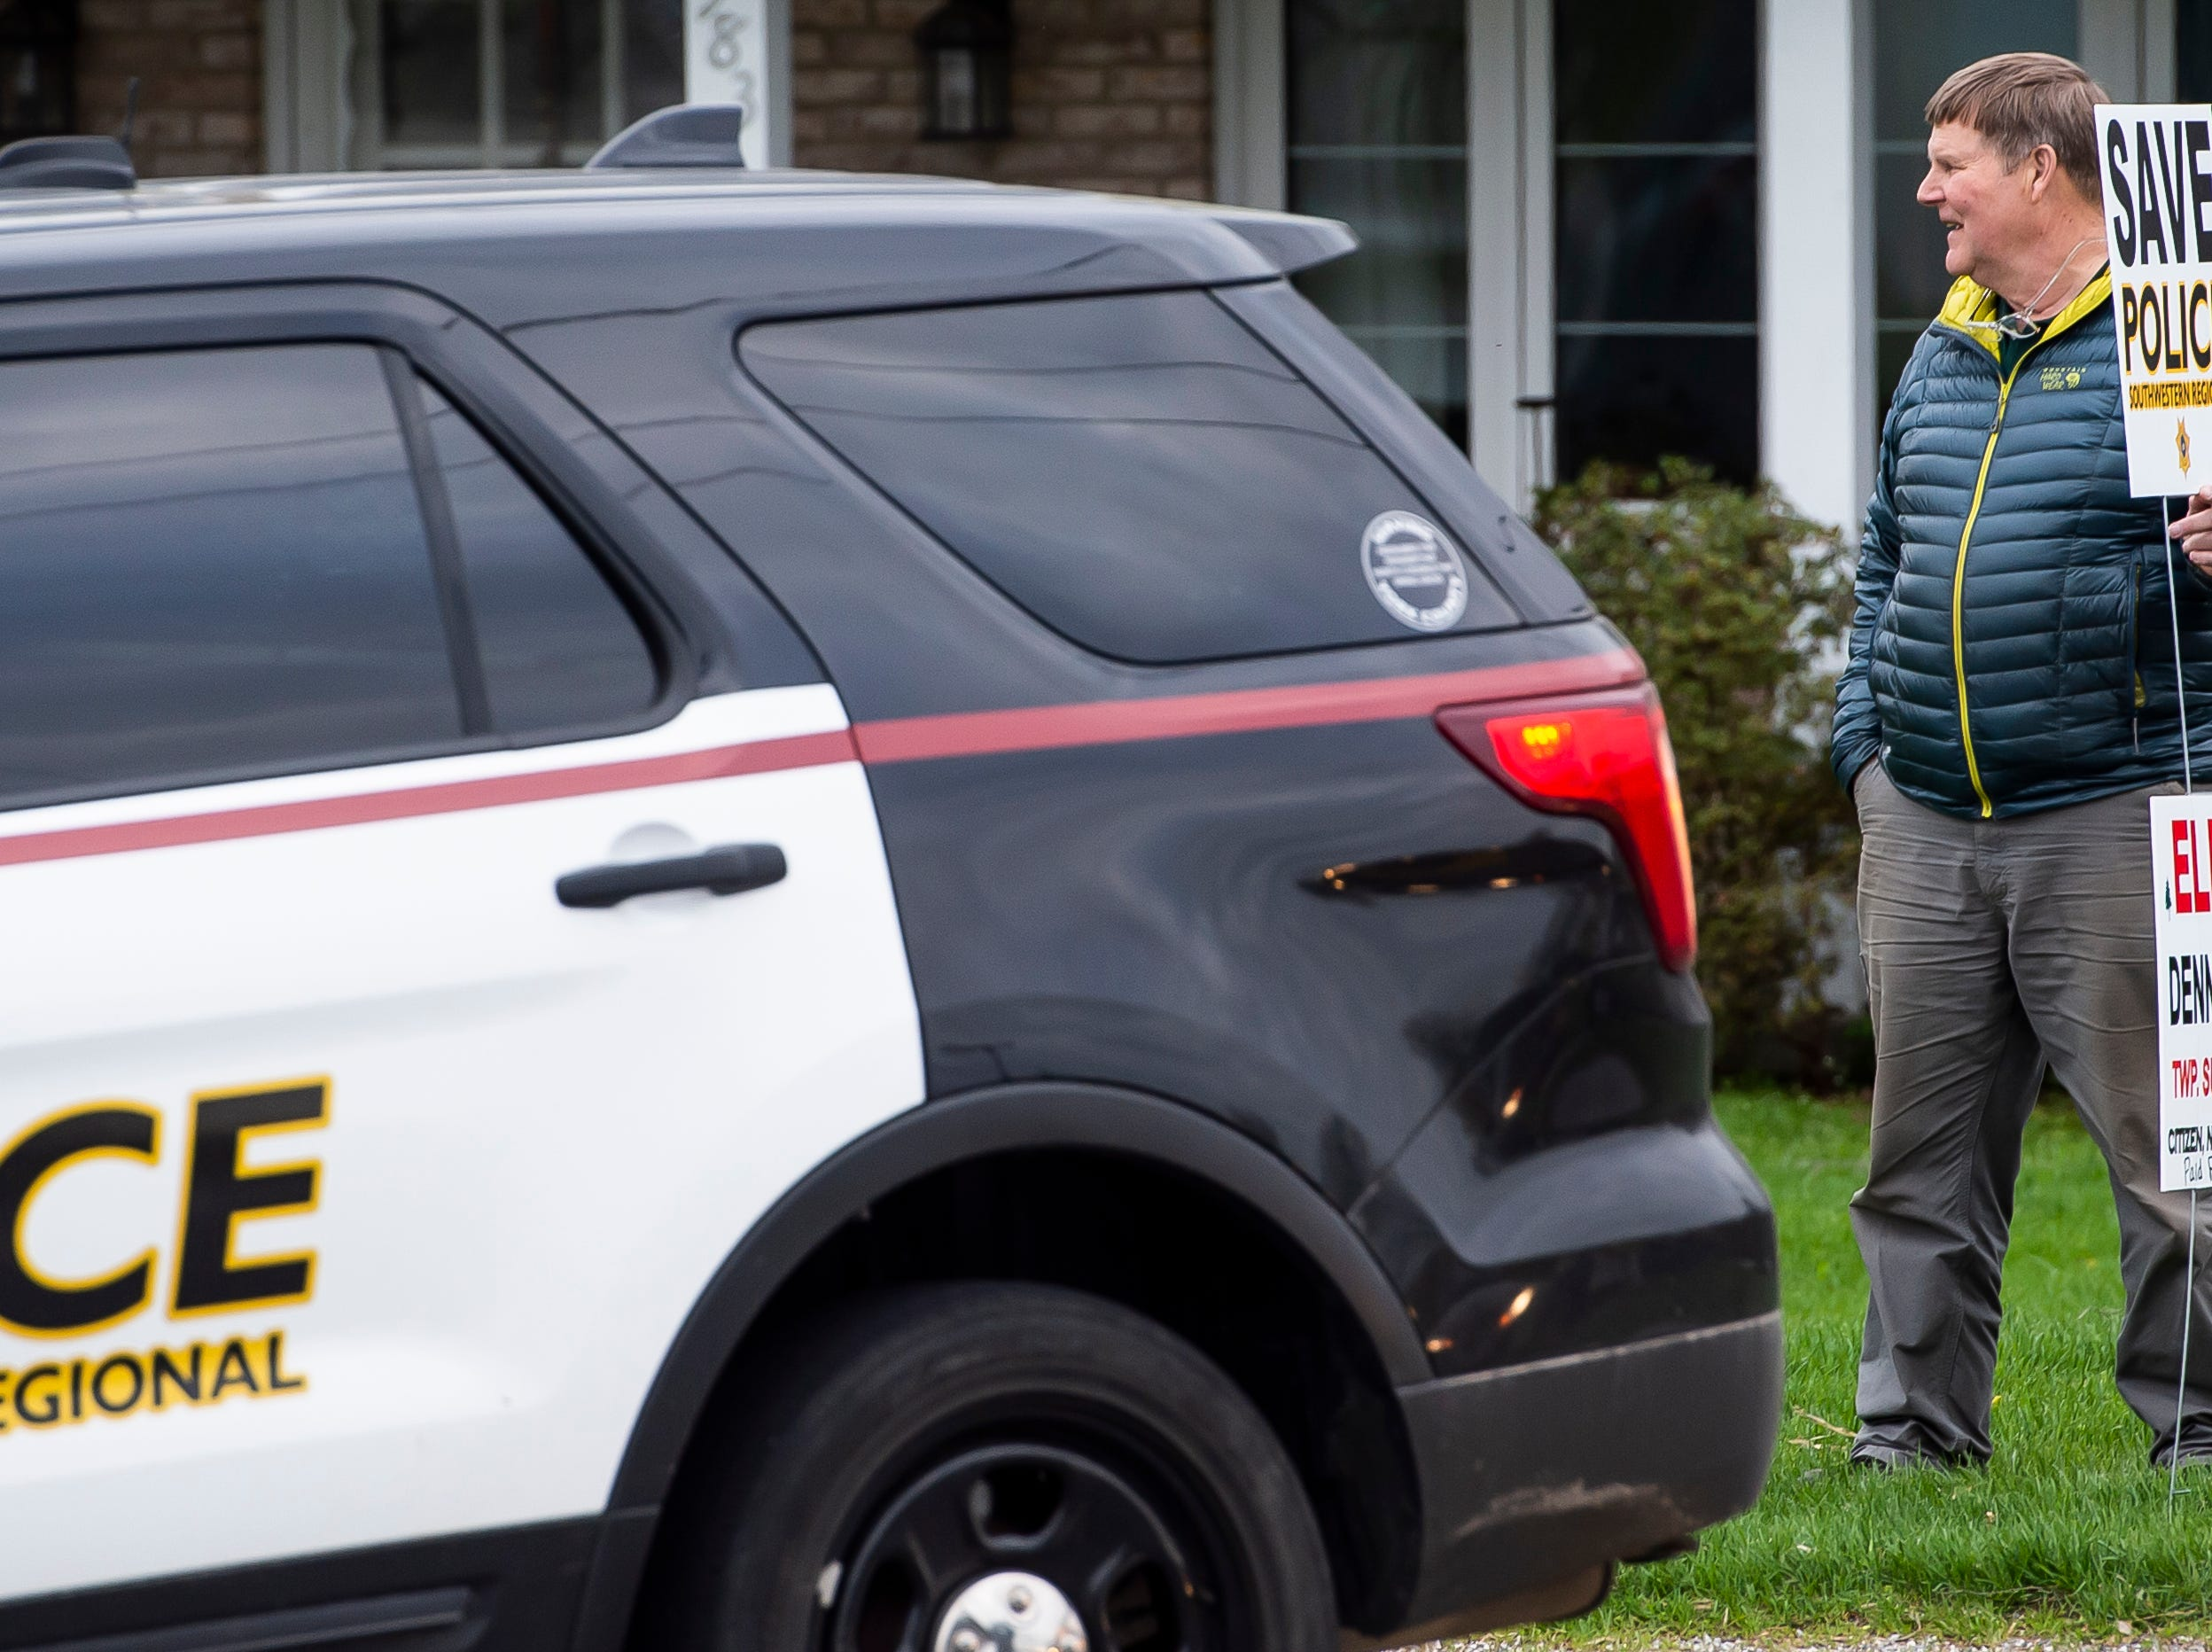 Bill Kaiser shows his support for Southwestern Regional Police as a Southwestern cruiser pulls into the North Codorus Township building parking lot on Tuesday, April 16, 2019.